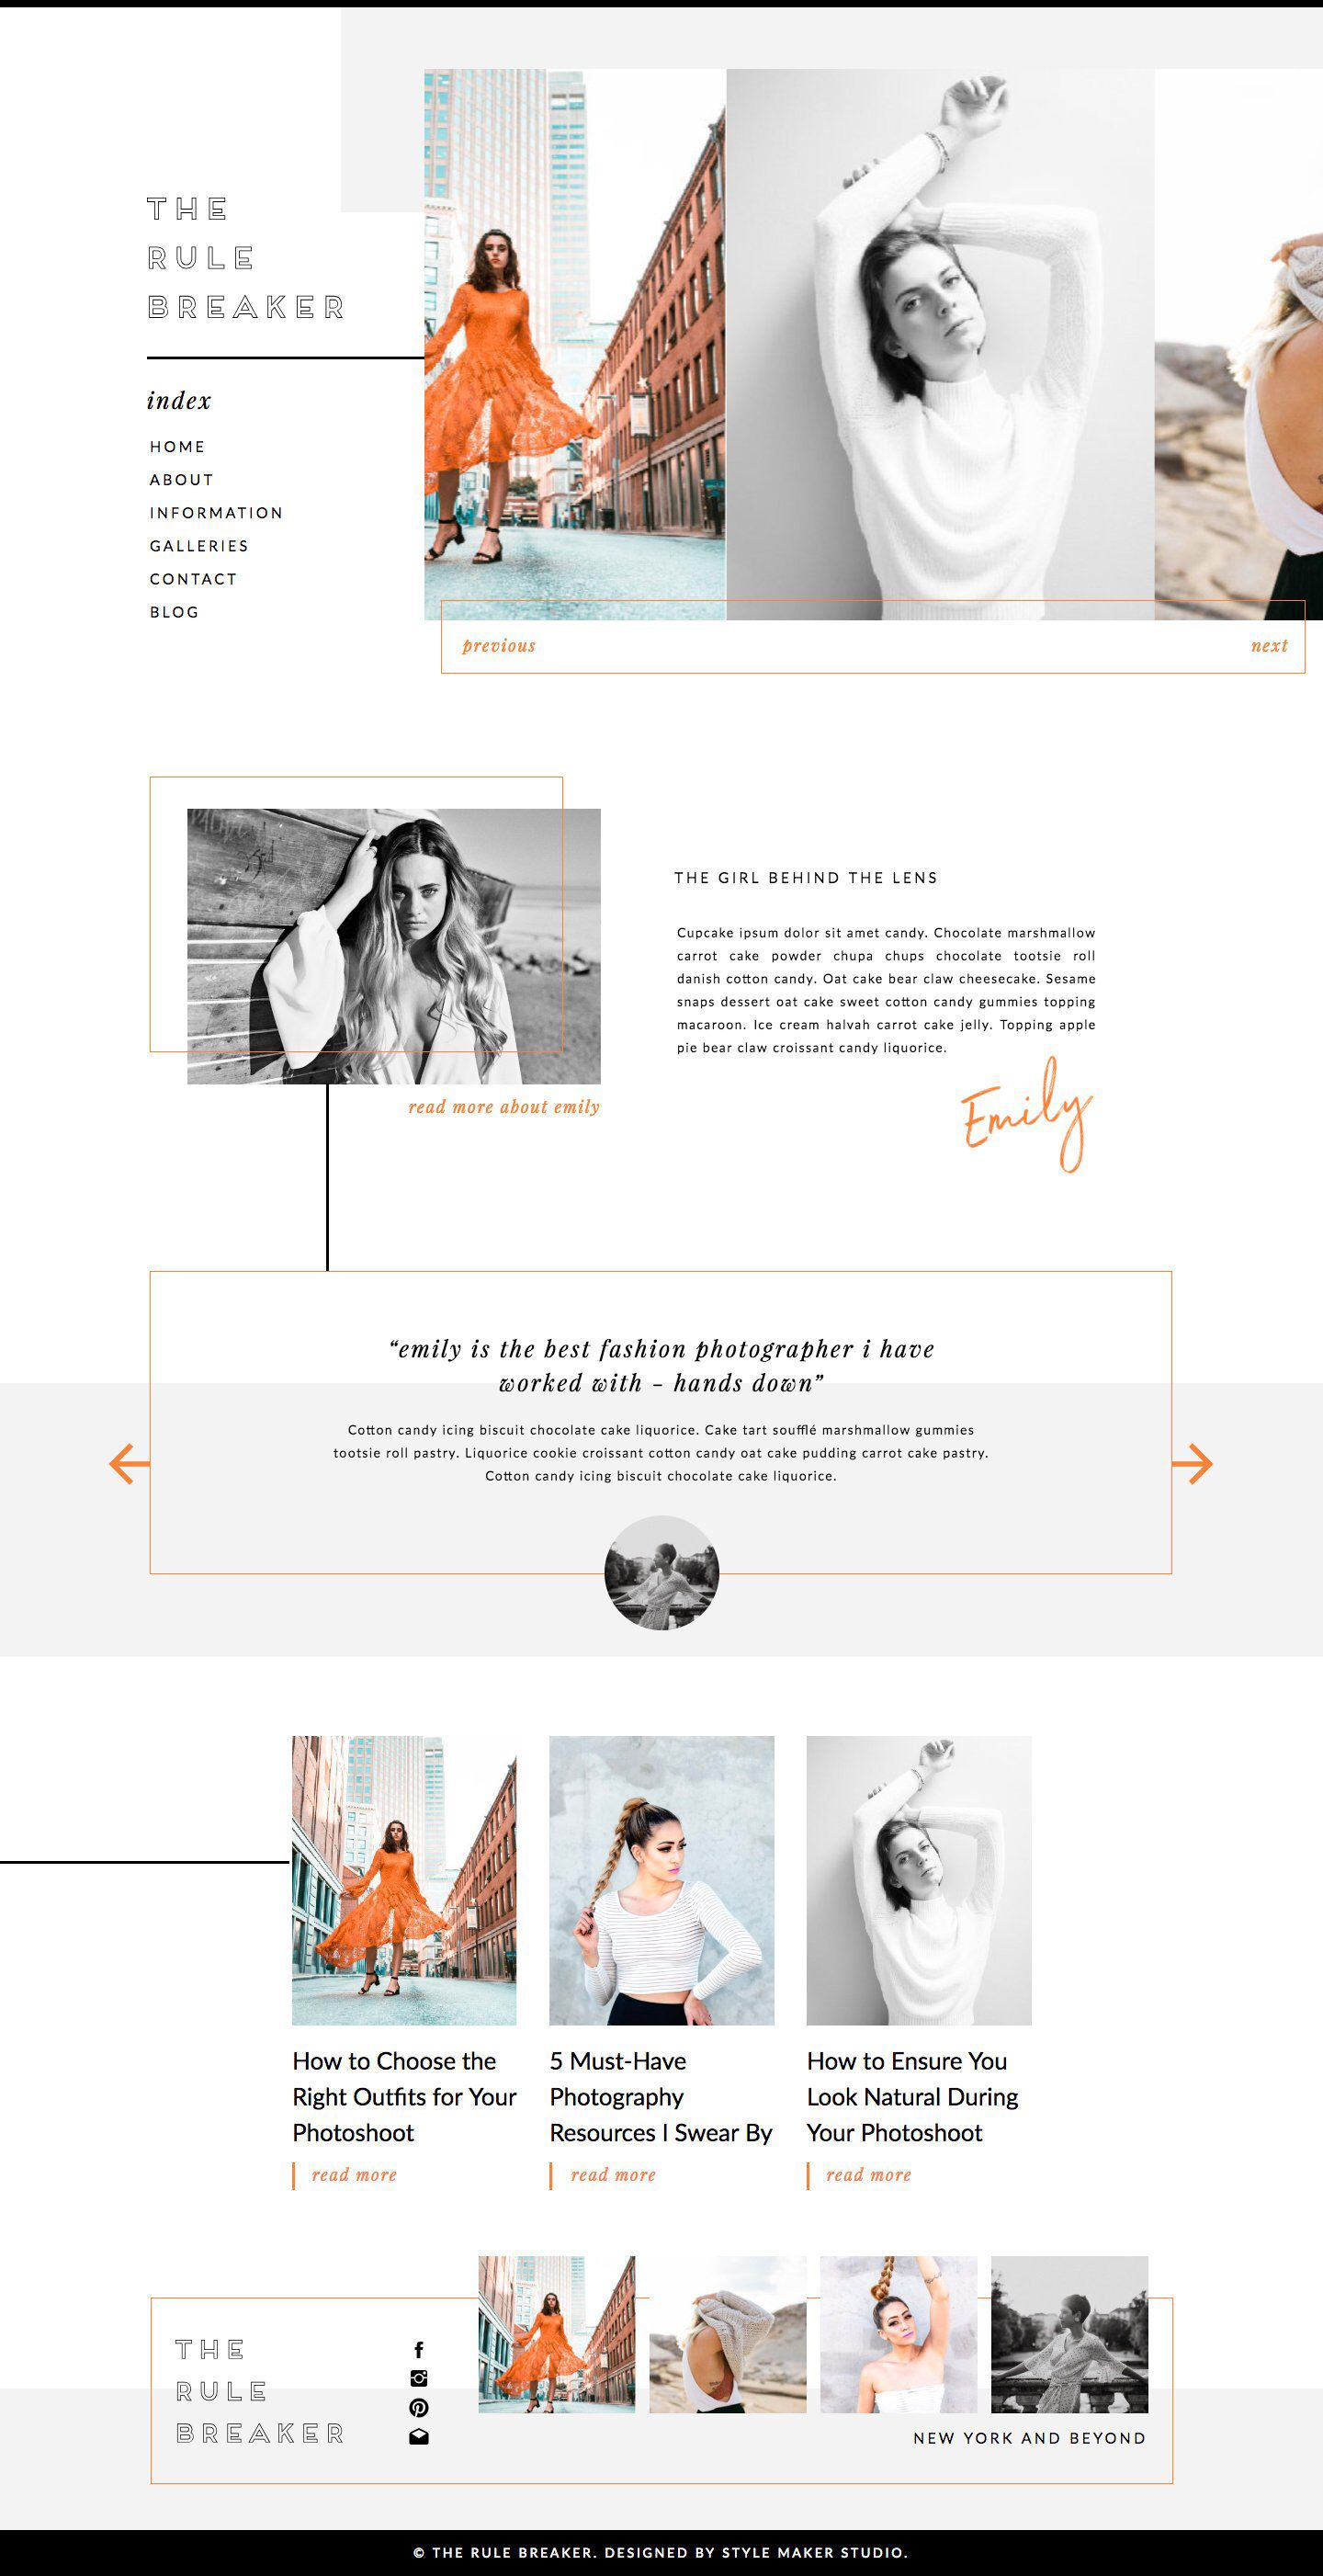 Modern Website Template for Showit Platform is part of Portfolio website design, Web layout design, Website design layout, Portfolio design, Web design, Photographer templates - therulebreaker stylemakerstudio com This modern website template has been created using the Showit platform  With an editorial vibe, it has been specifically designed for fashion photographers, bloggers and creatives  Update colours, fonts, images and more to suit your brand  Optimised for both desktop and mobile, this showit website template is completely mobile responsive and will look great across all devices  Each purchase comes with complimentary access to the online course, 'Getting Started with Showit' so you can feel confident using a brand new website platform   'The Rule Breaker' Includes  • Home page design • About page • Services page • Portfolio page • Contact page • Premade Blog Design • Single Post Blog Template